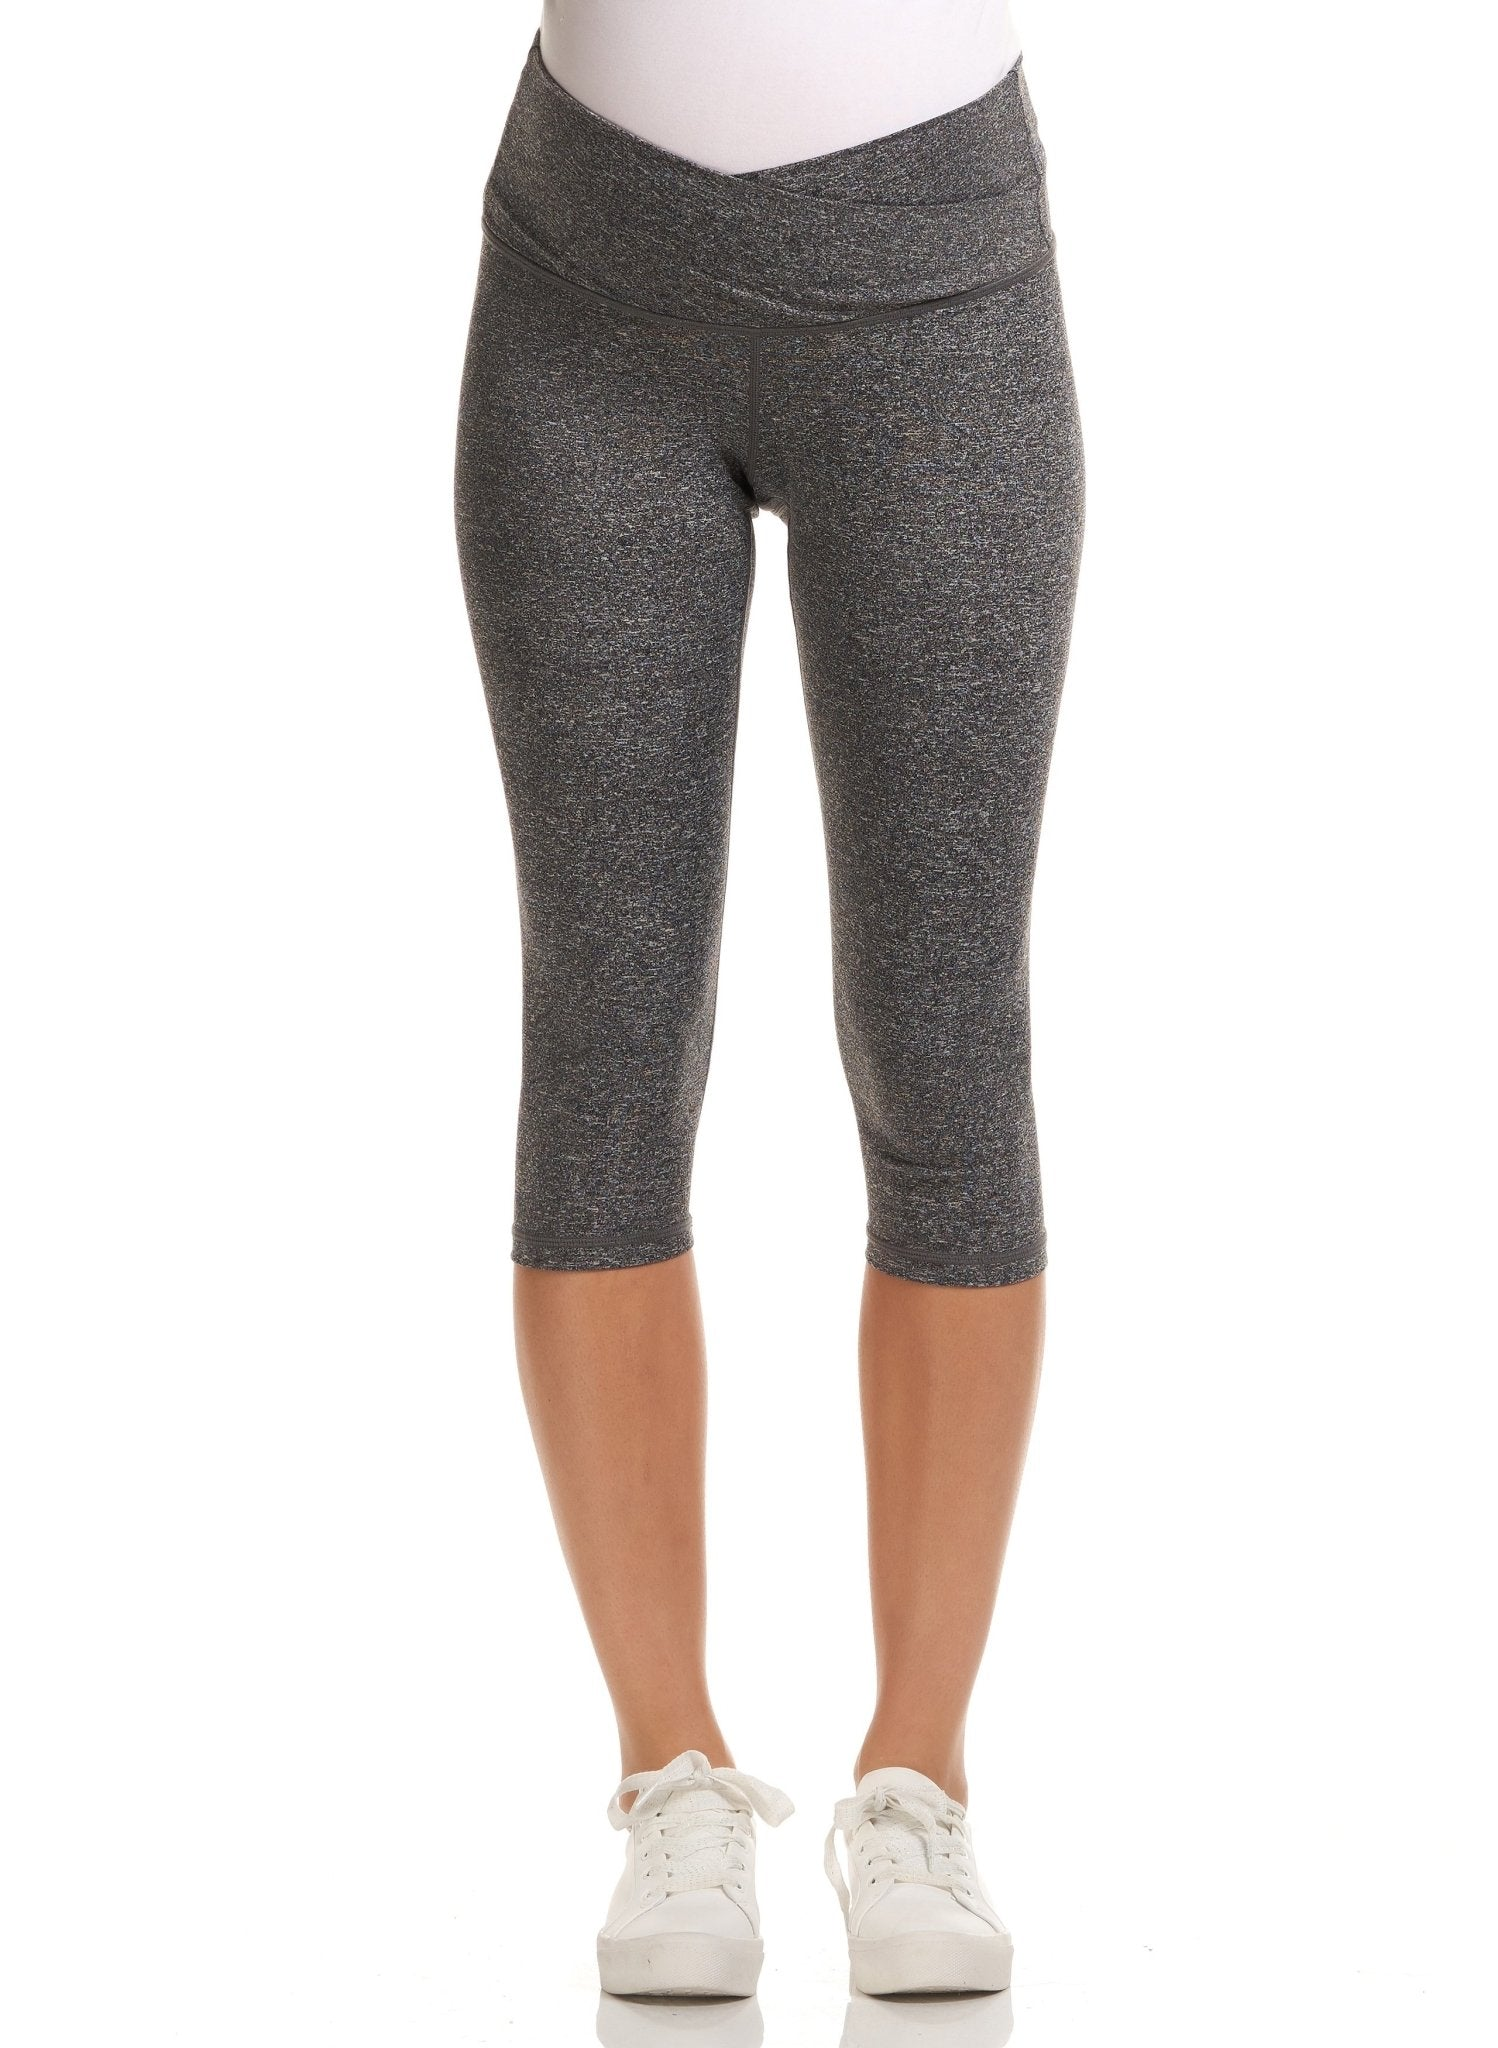 Sage 3/4 Active Maternity Legging - Grey - Mums and Bumps